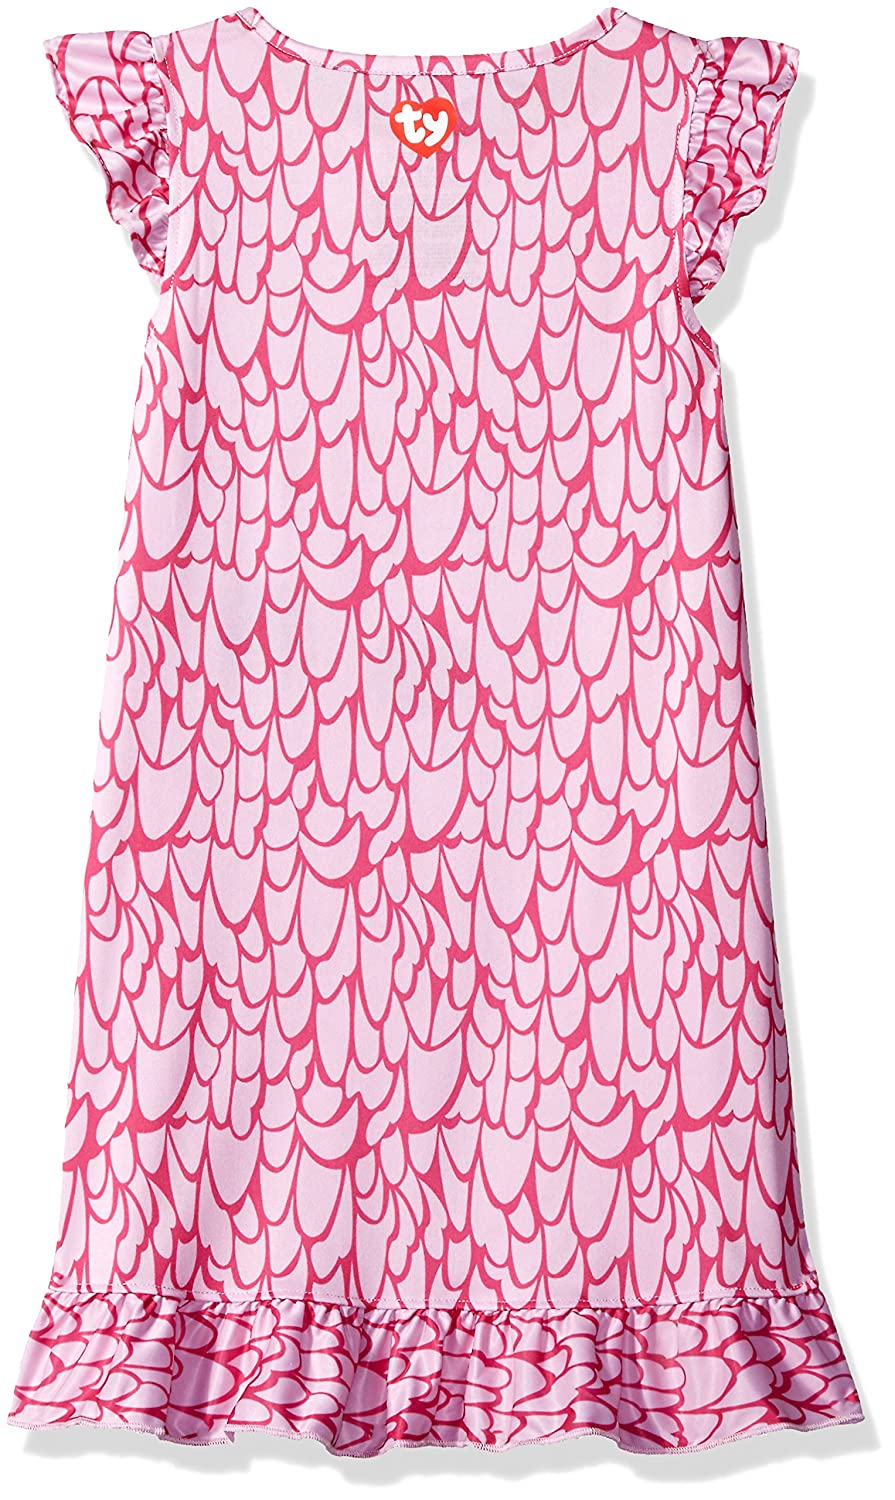 INTIMO Girls Ty Beanie Boo Ruffle Nightgown